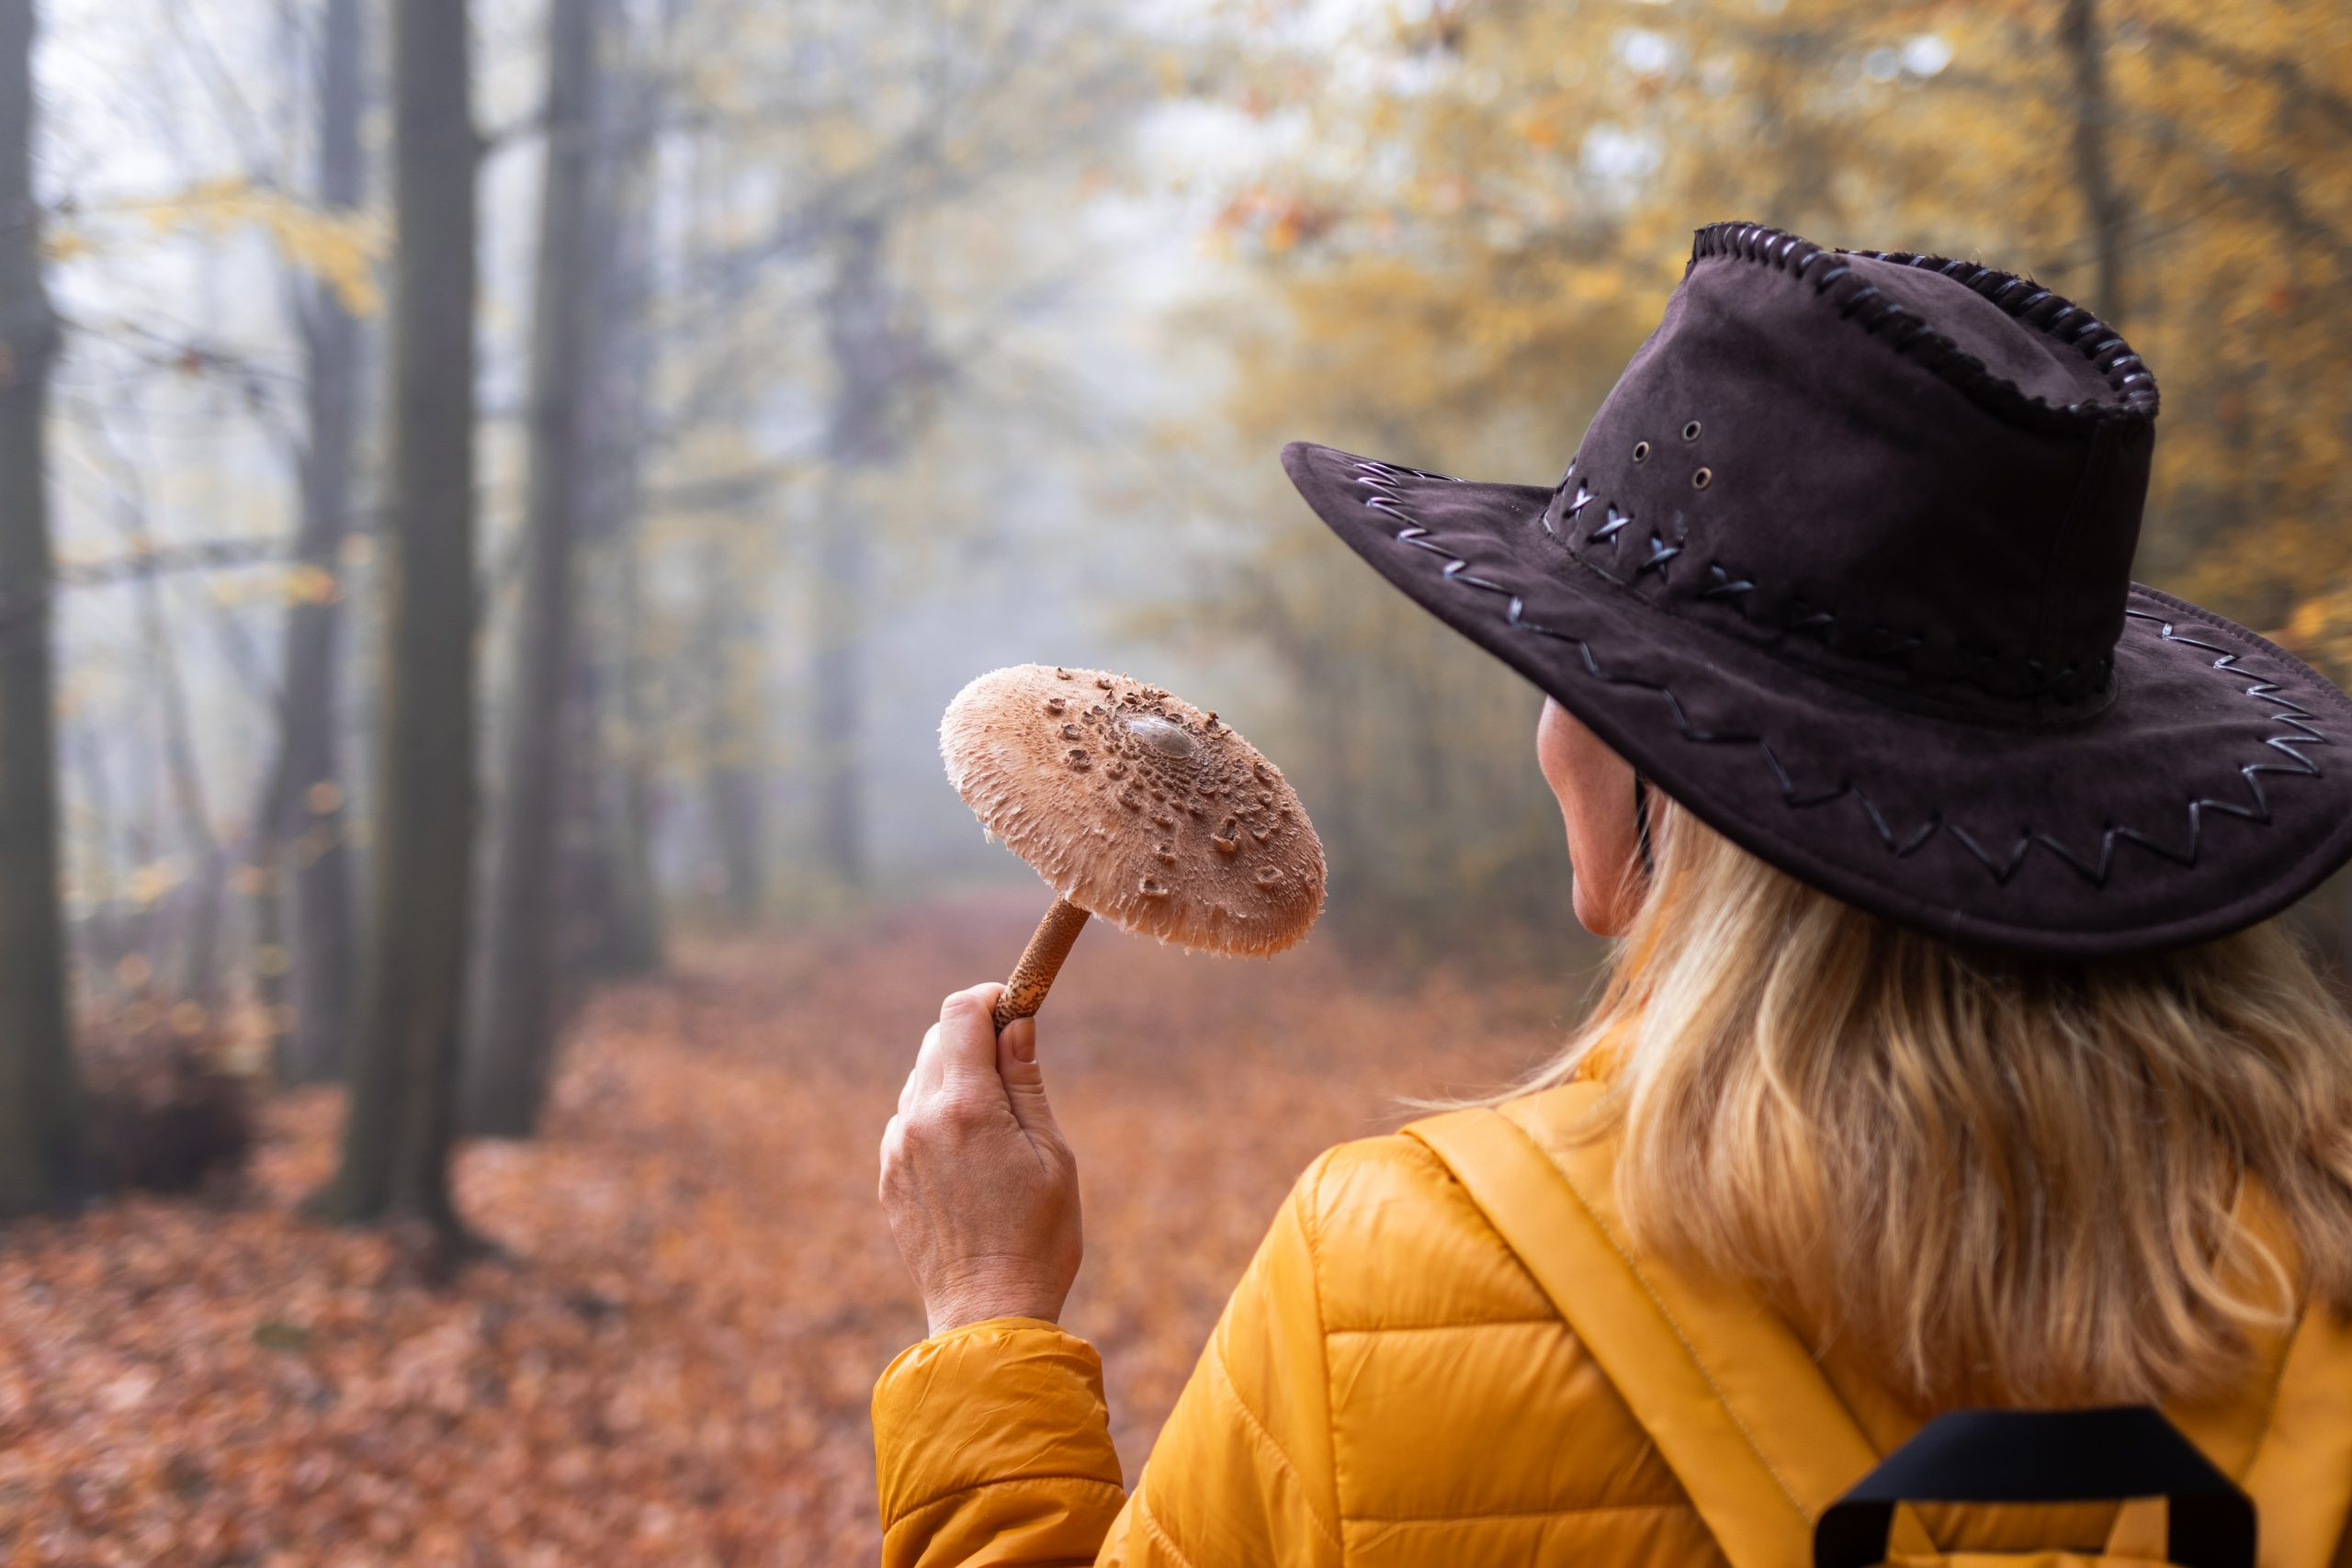 Woman holding a wild mushroom in the forest